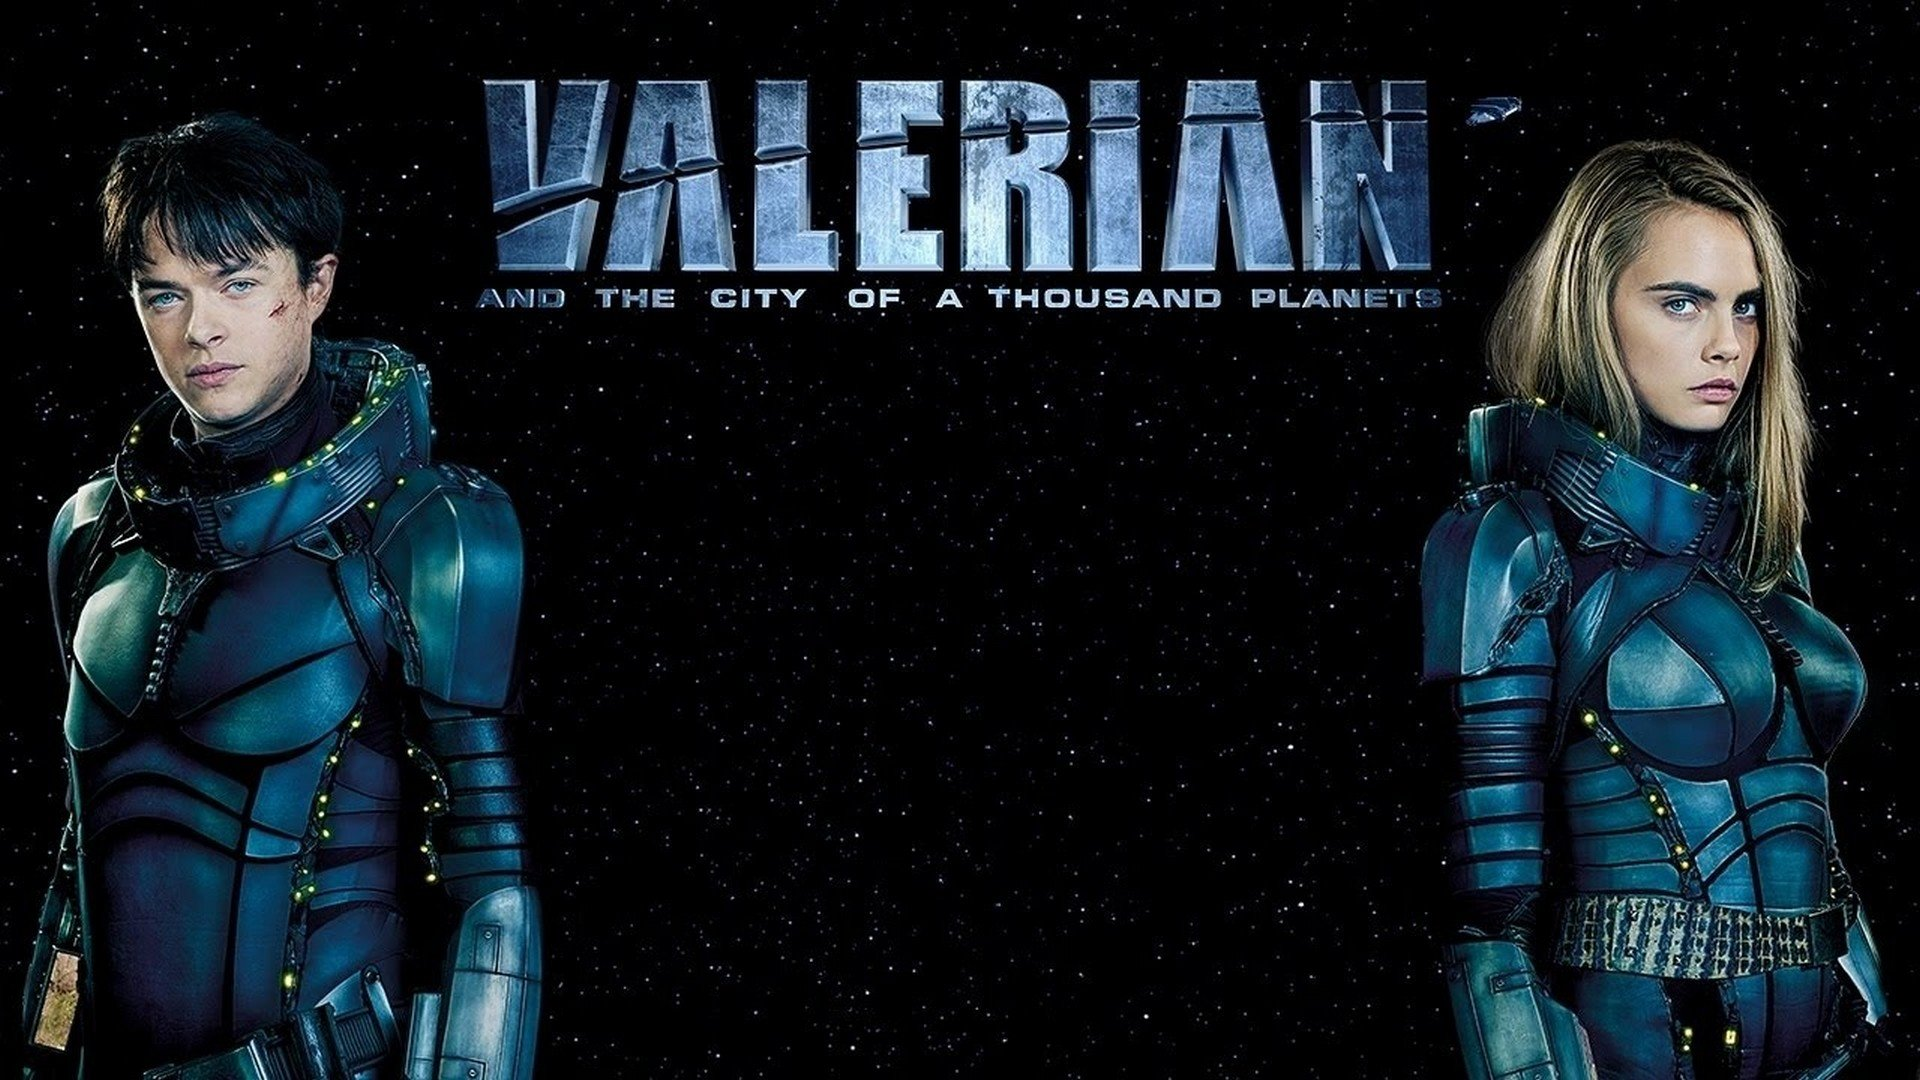 Valerian and the City of a Thousand Planets Wallpaper 4   1920 X 1920x1080